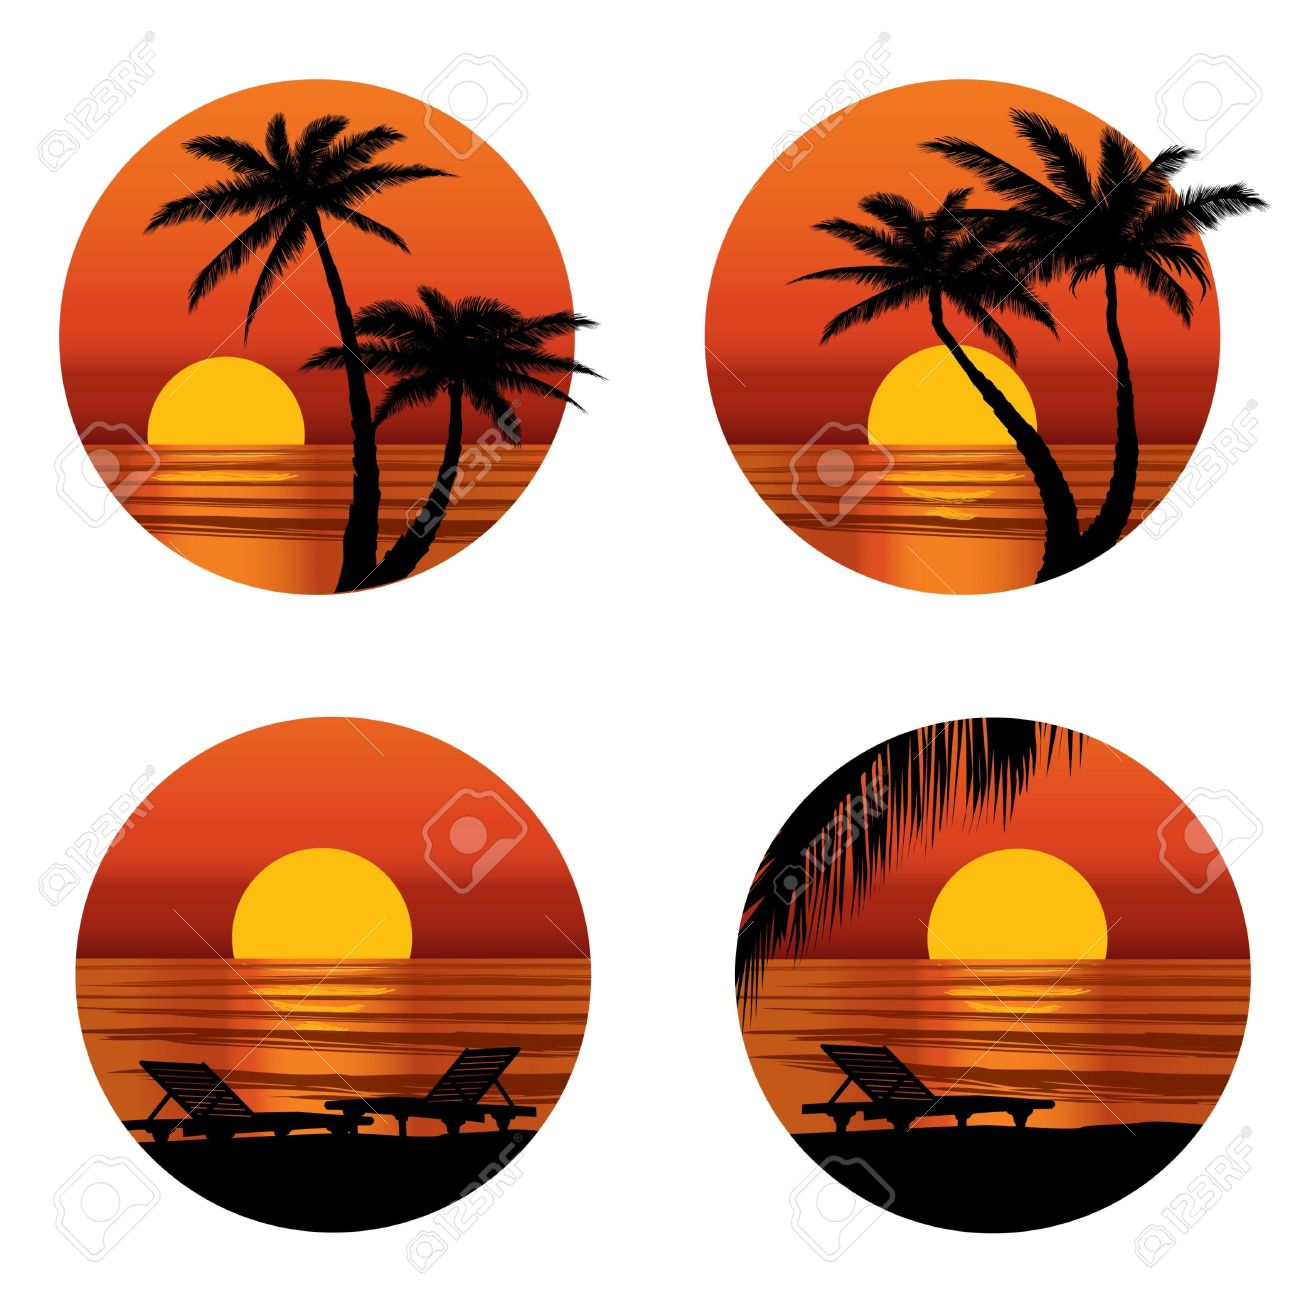 Sunset Beach Clipart | Free download best Sunset Beach ... image freeuse stock